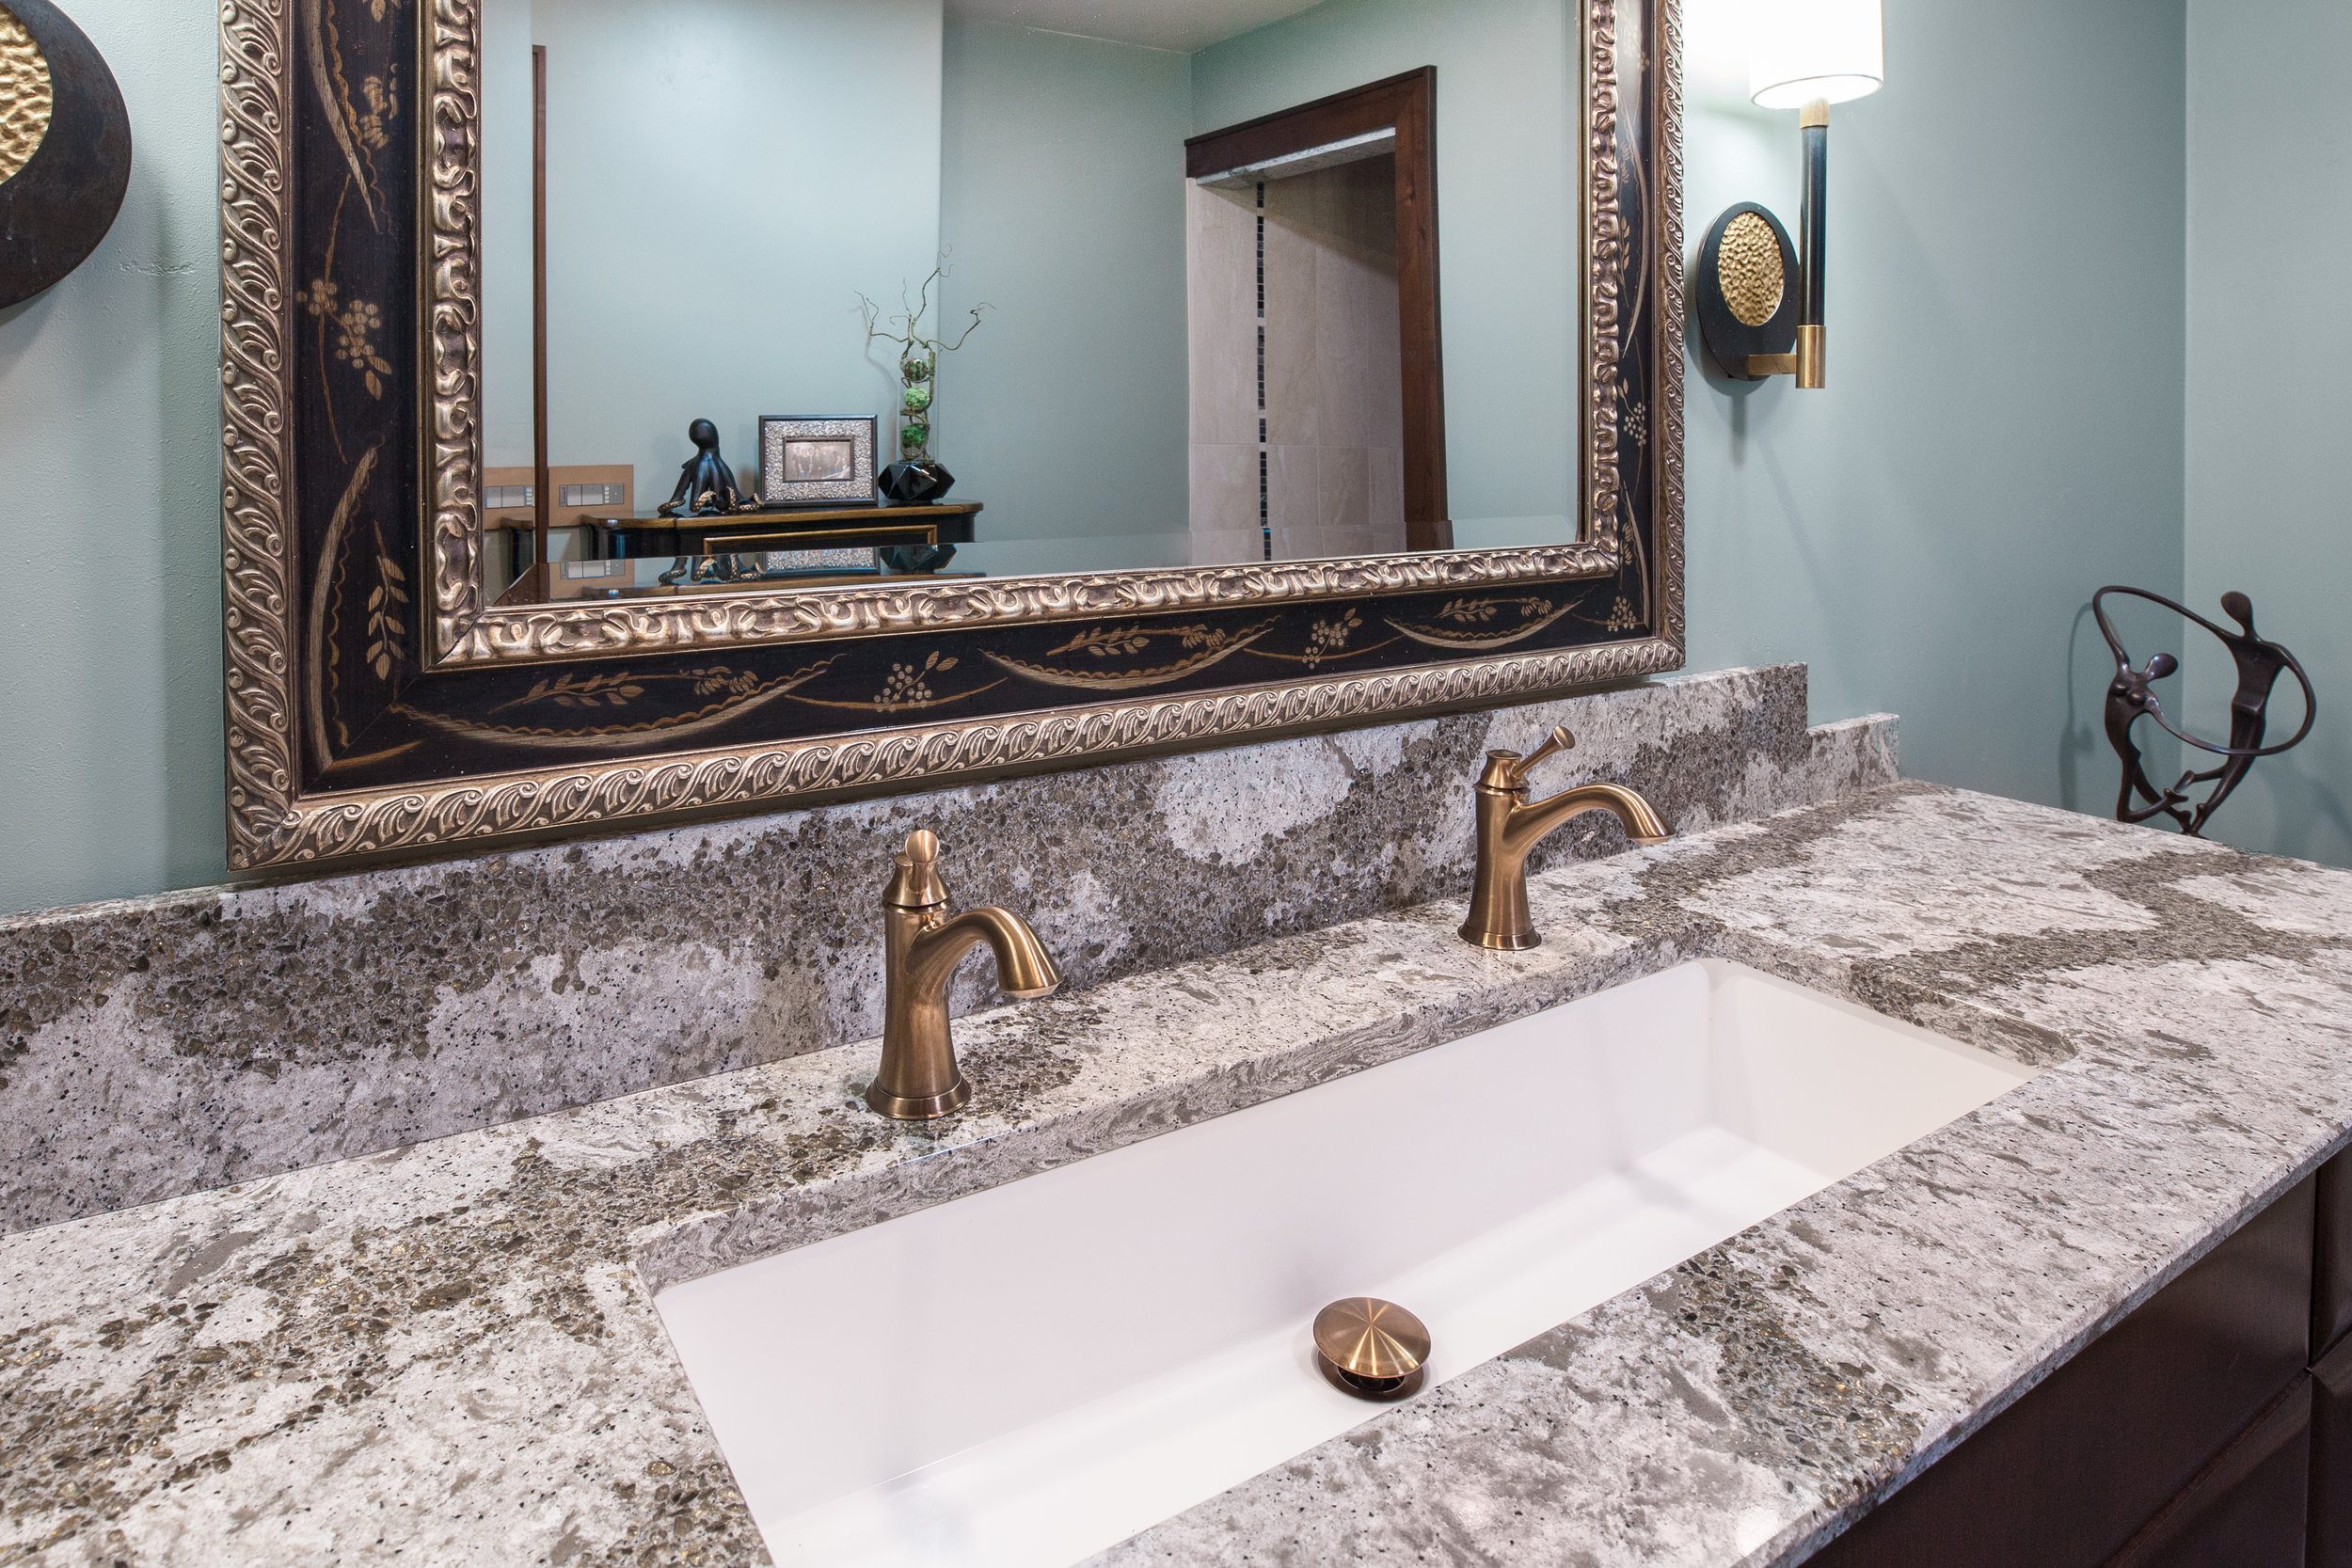 Grey Granite Countertops Gold Sink Faucent Wide Bathroom Mirror